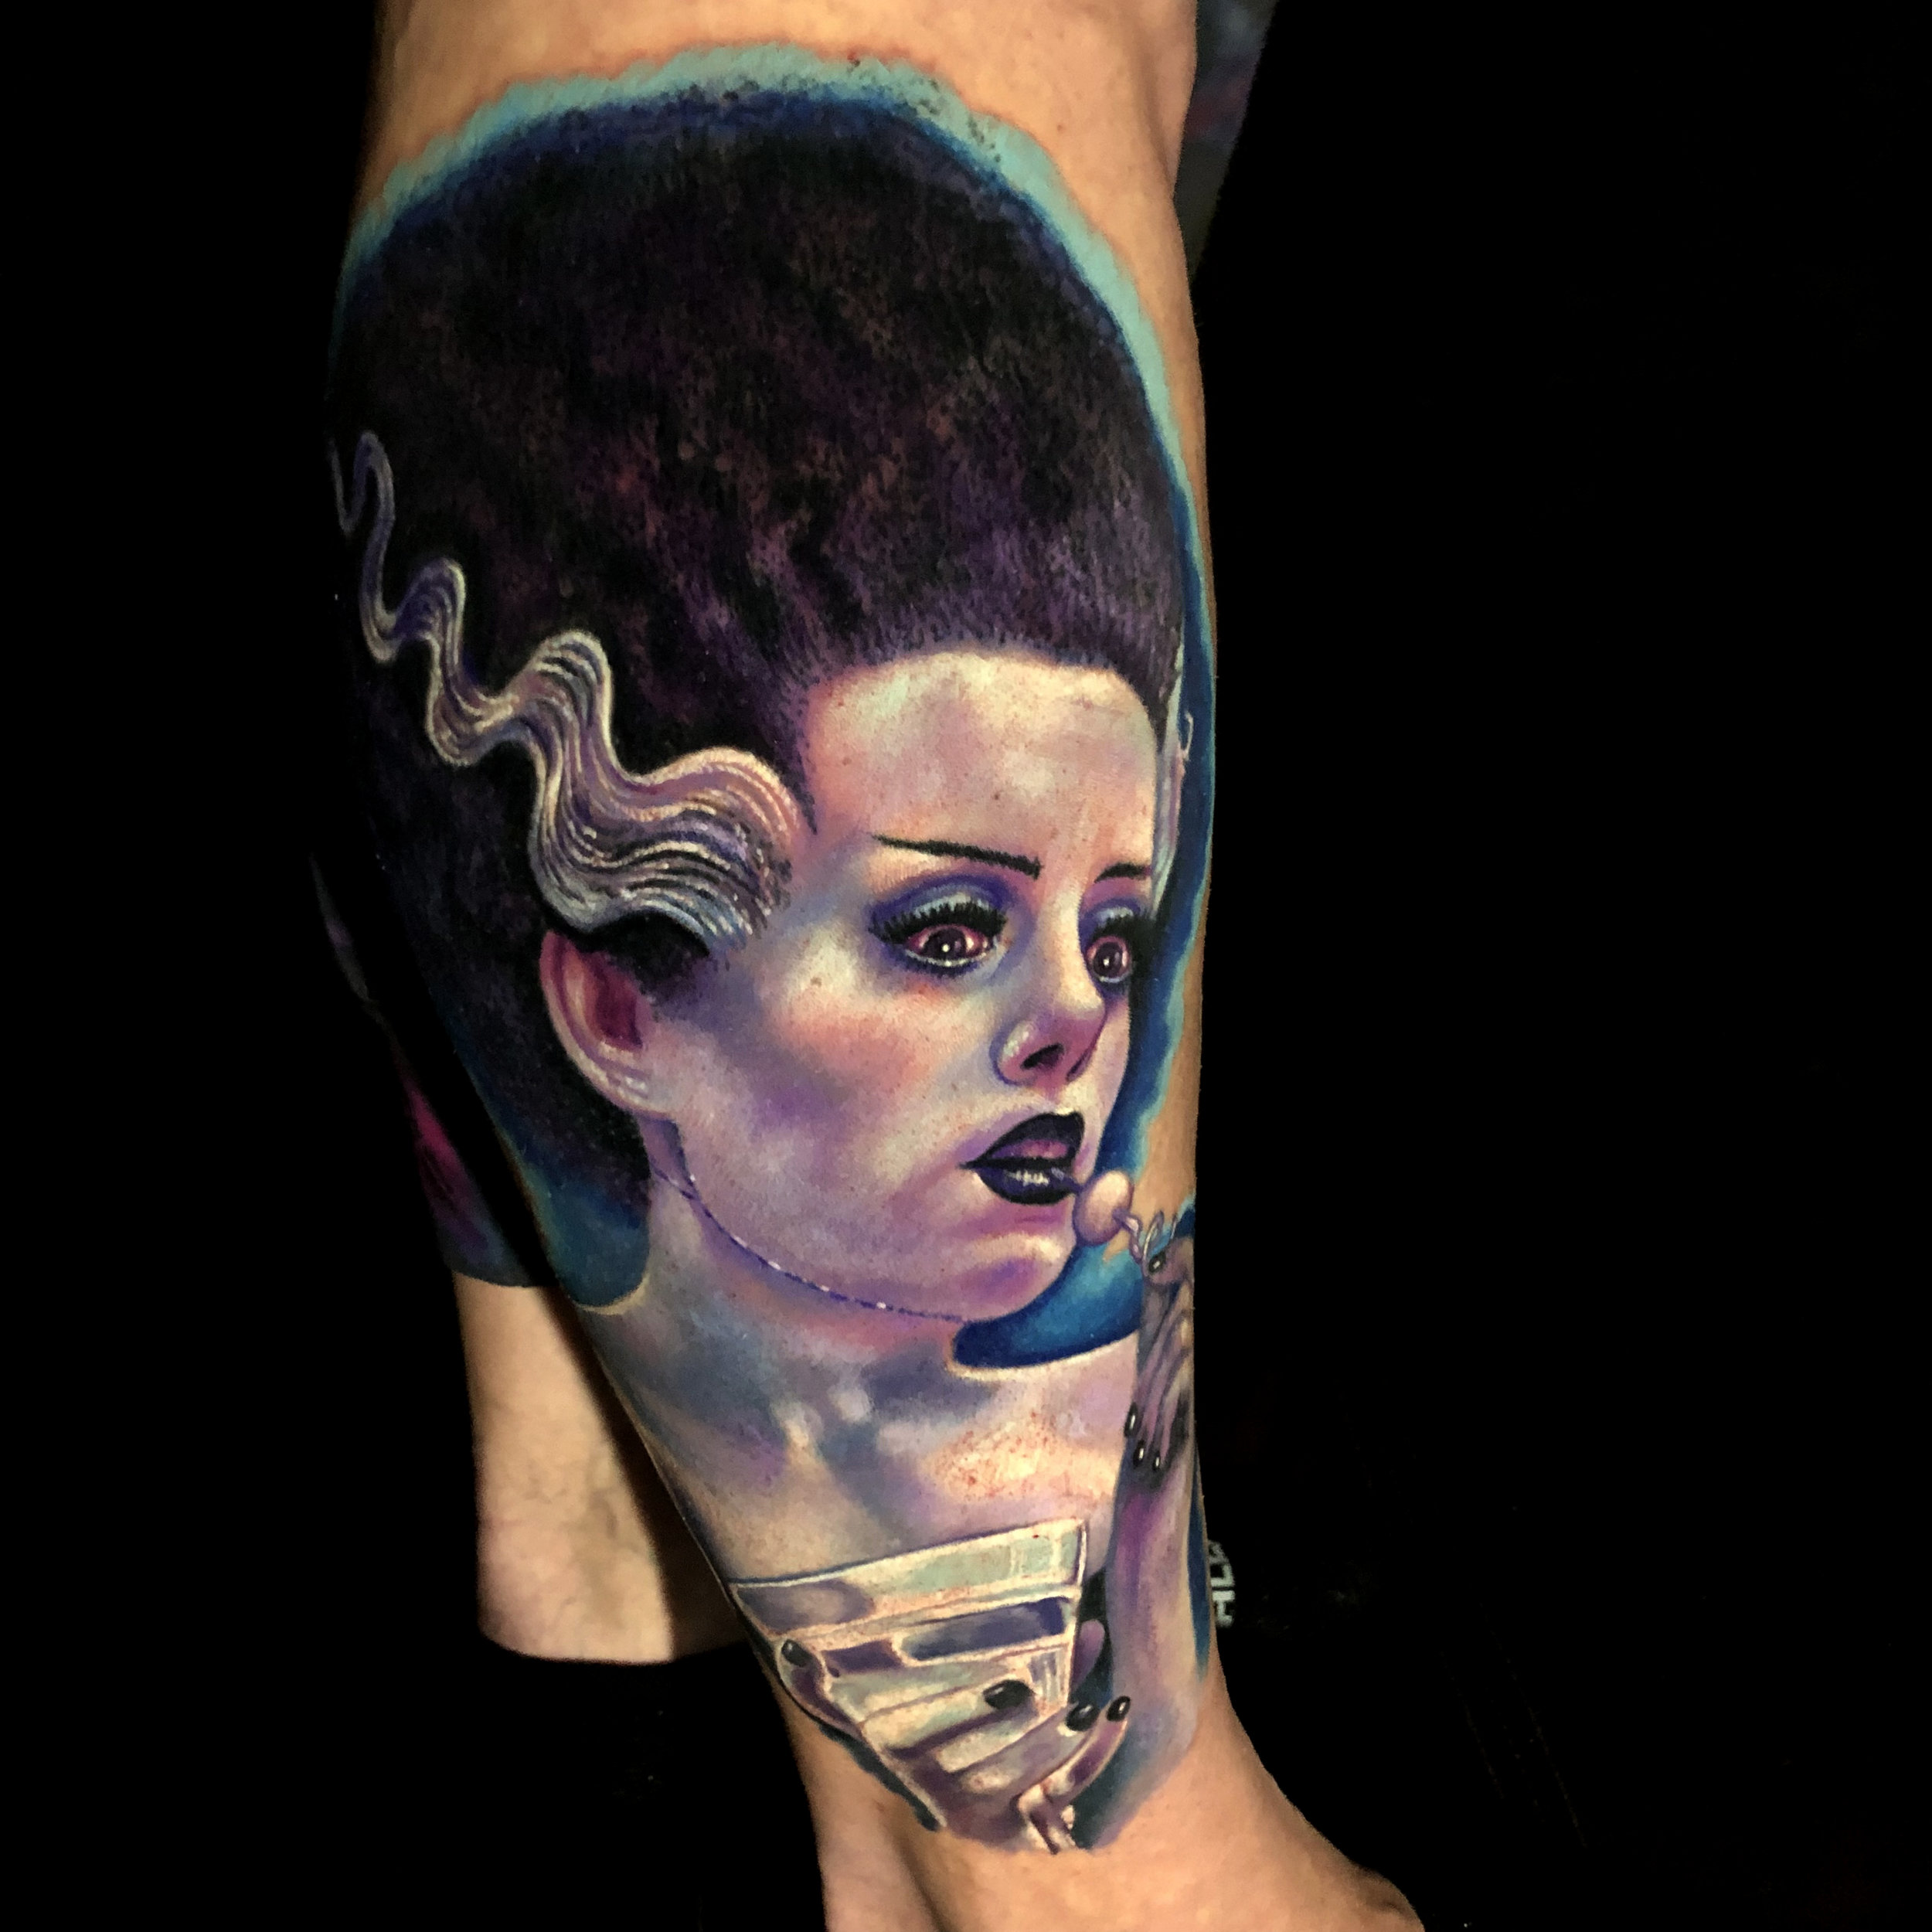 Liz Cook Tattoo Bride of Frakenstein Elsa Lanchester Monochromatic Color Portrait Purple Martine Glass Front.jpg